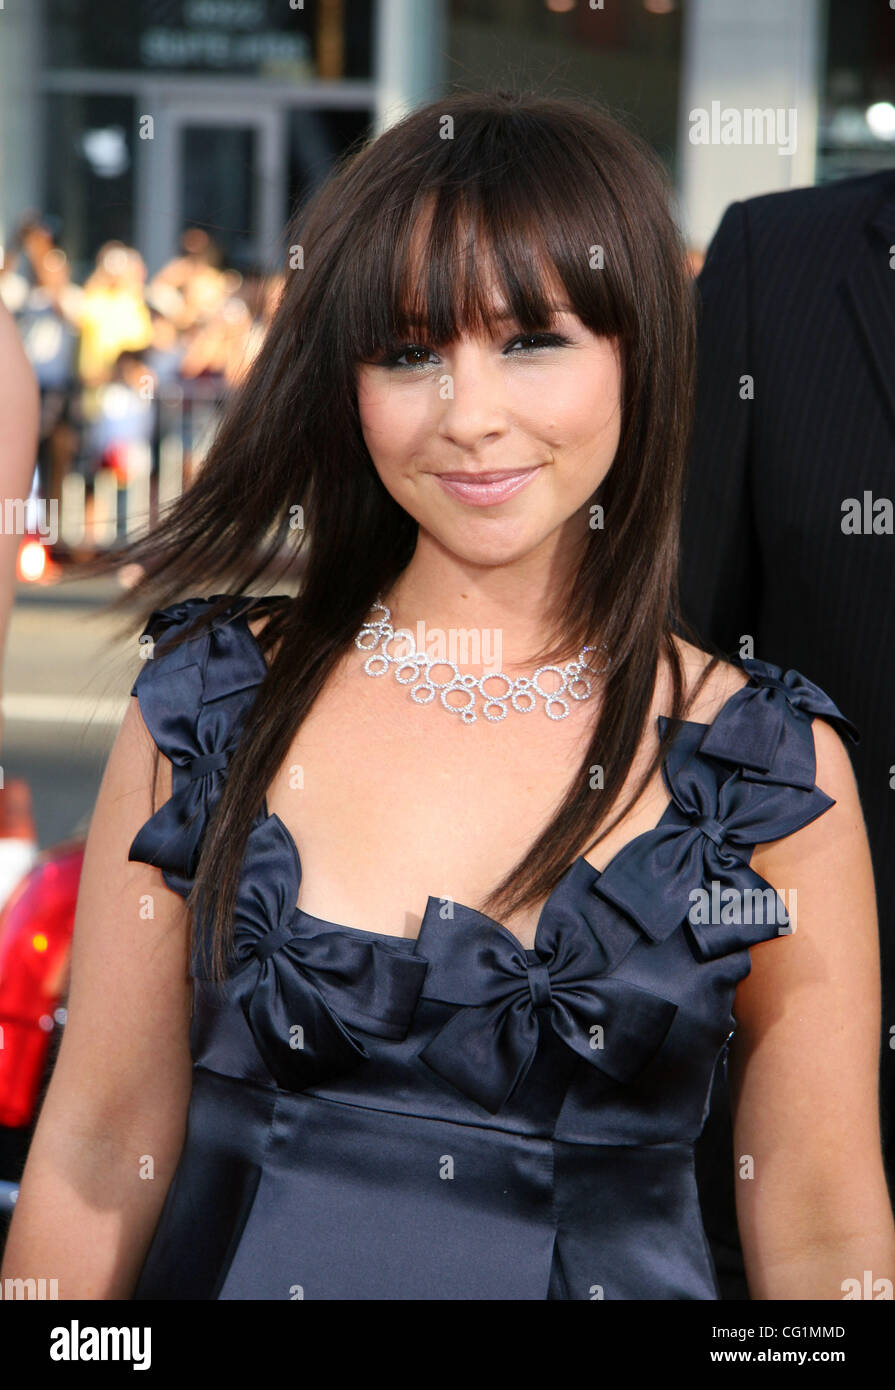 aug 23, 2007 - hollywood, ca, usa - danielle harris arriving at the